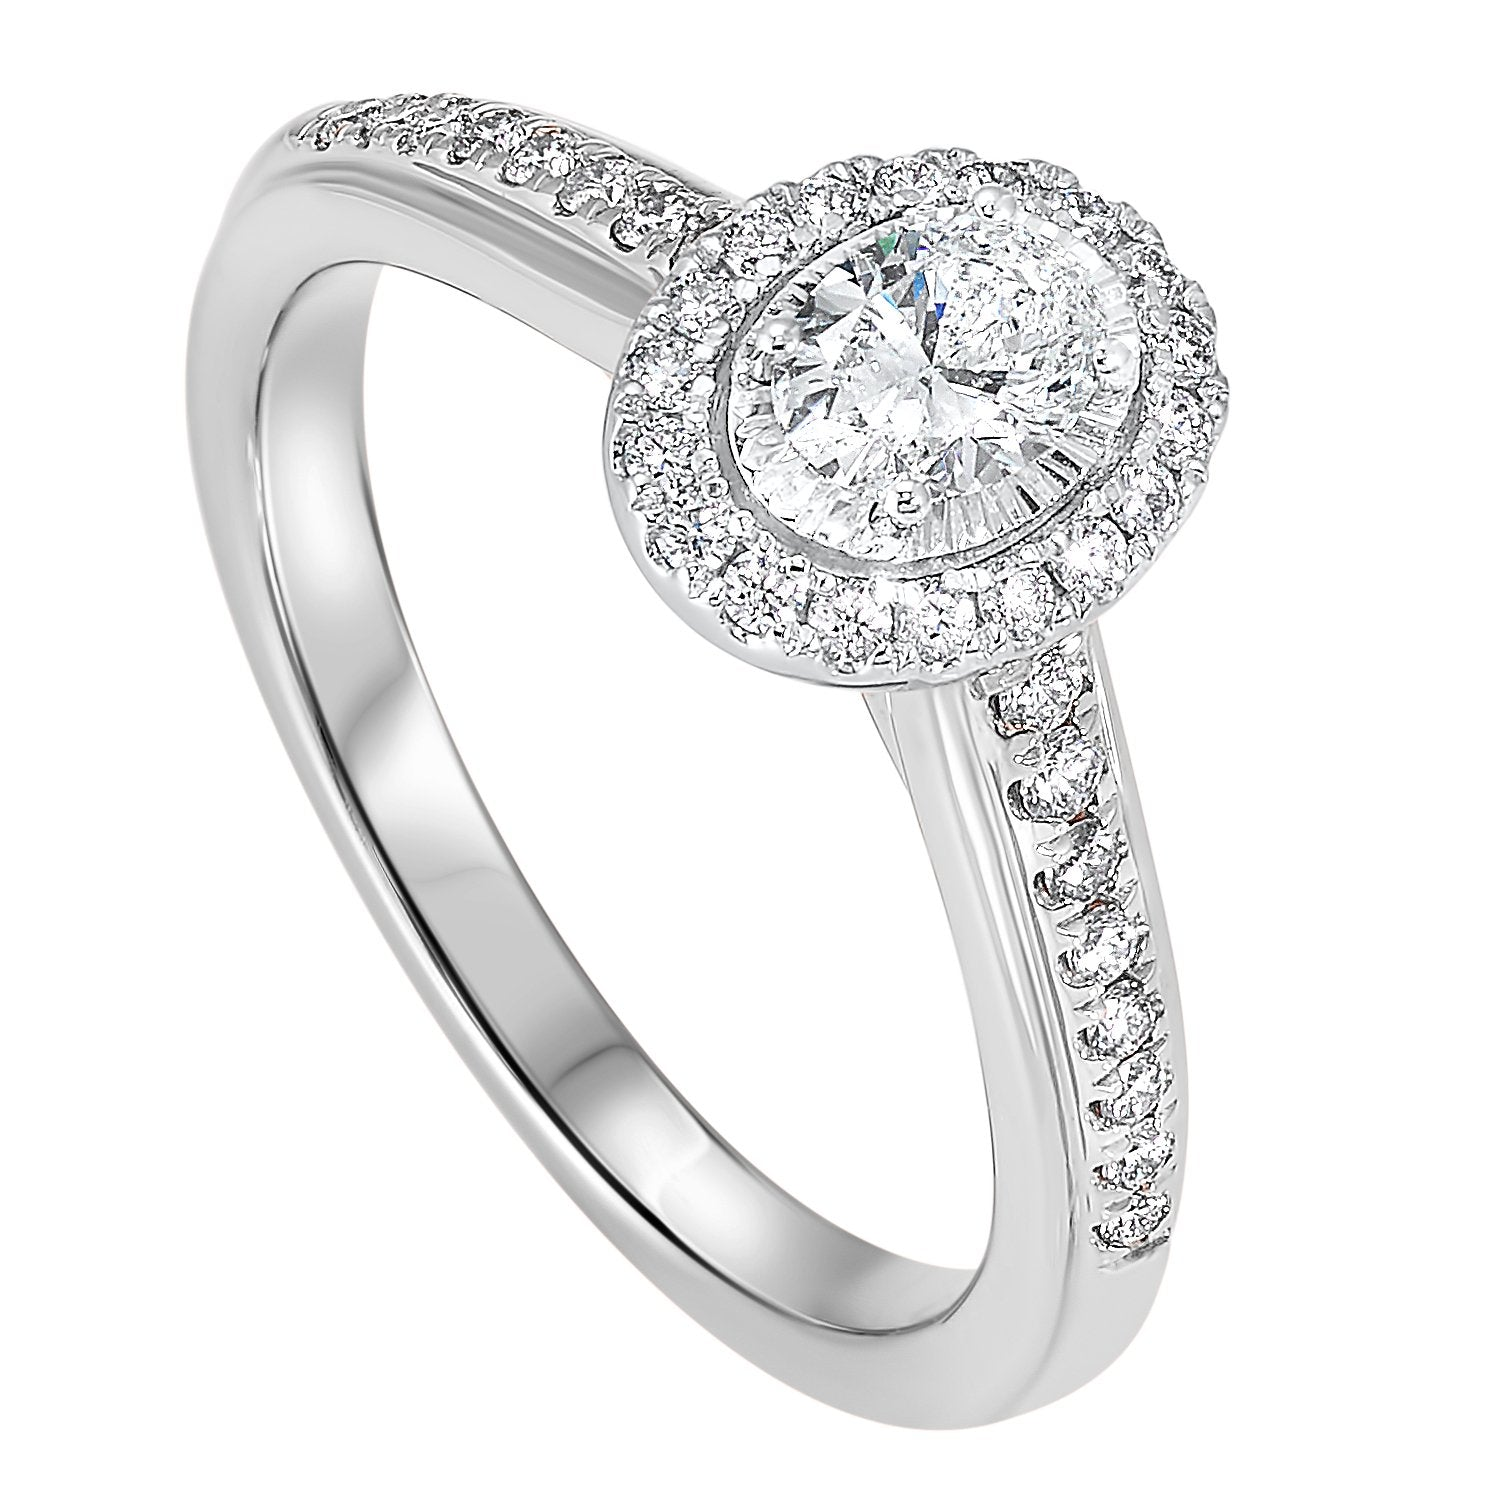 14K White 1/2 CTW Diamond Oval Ring with 1/3 CT Center